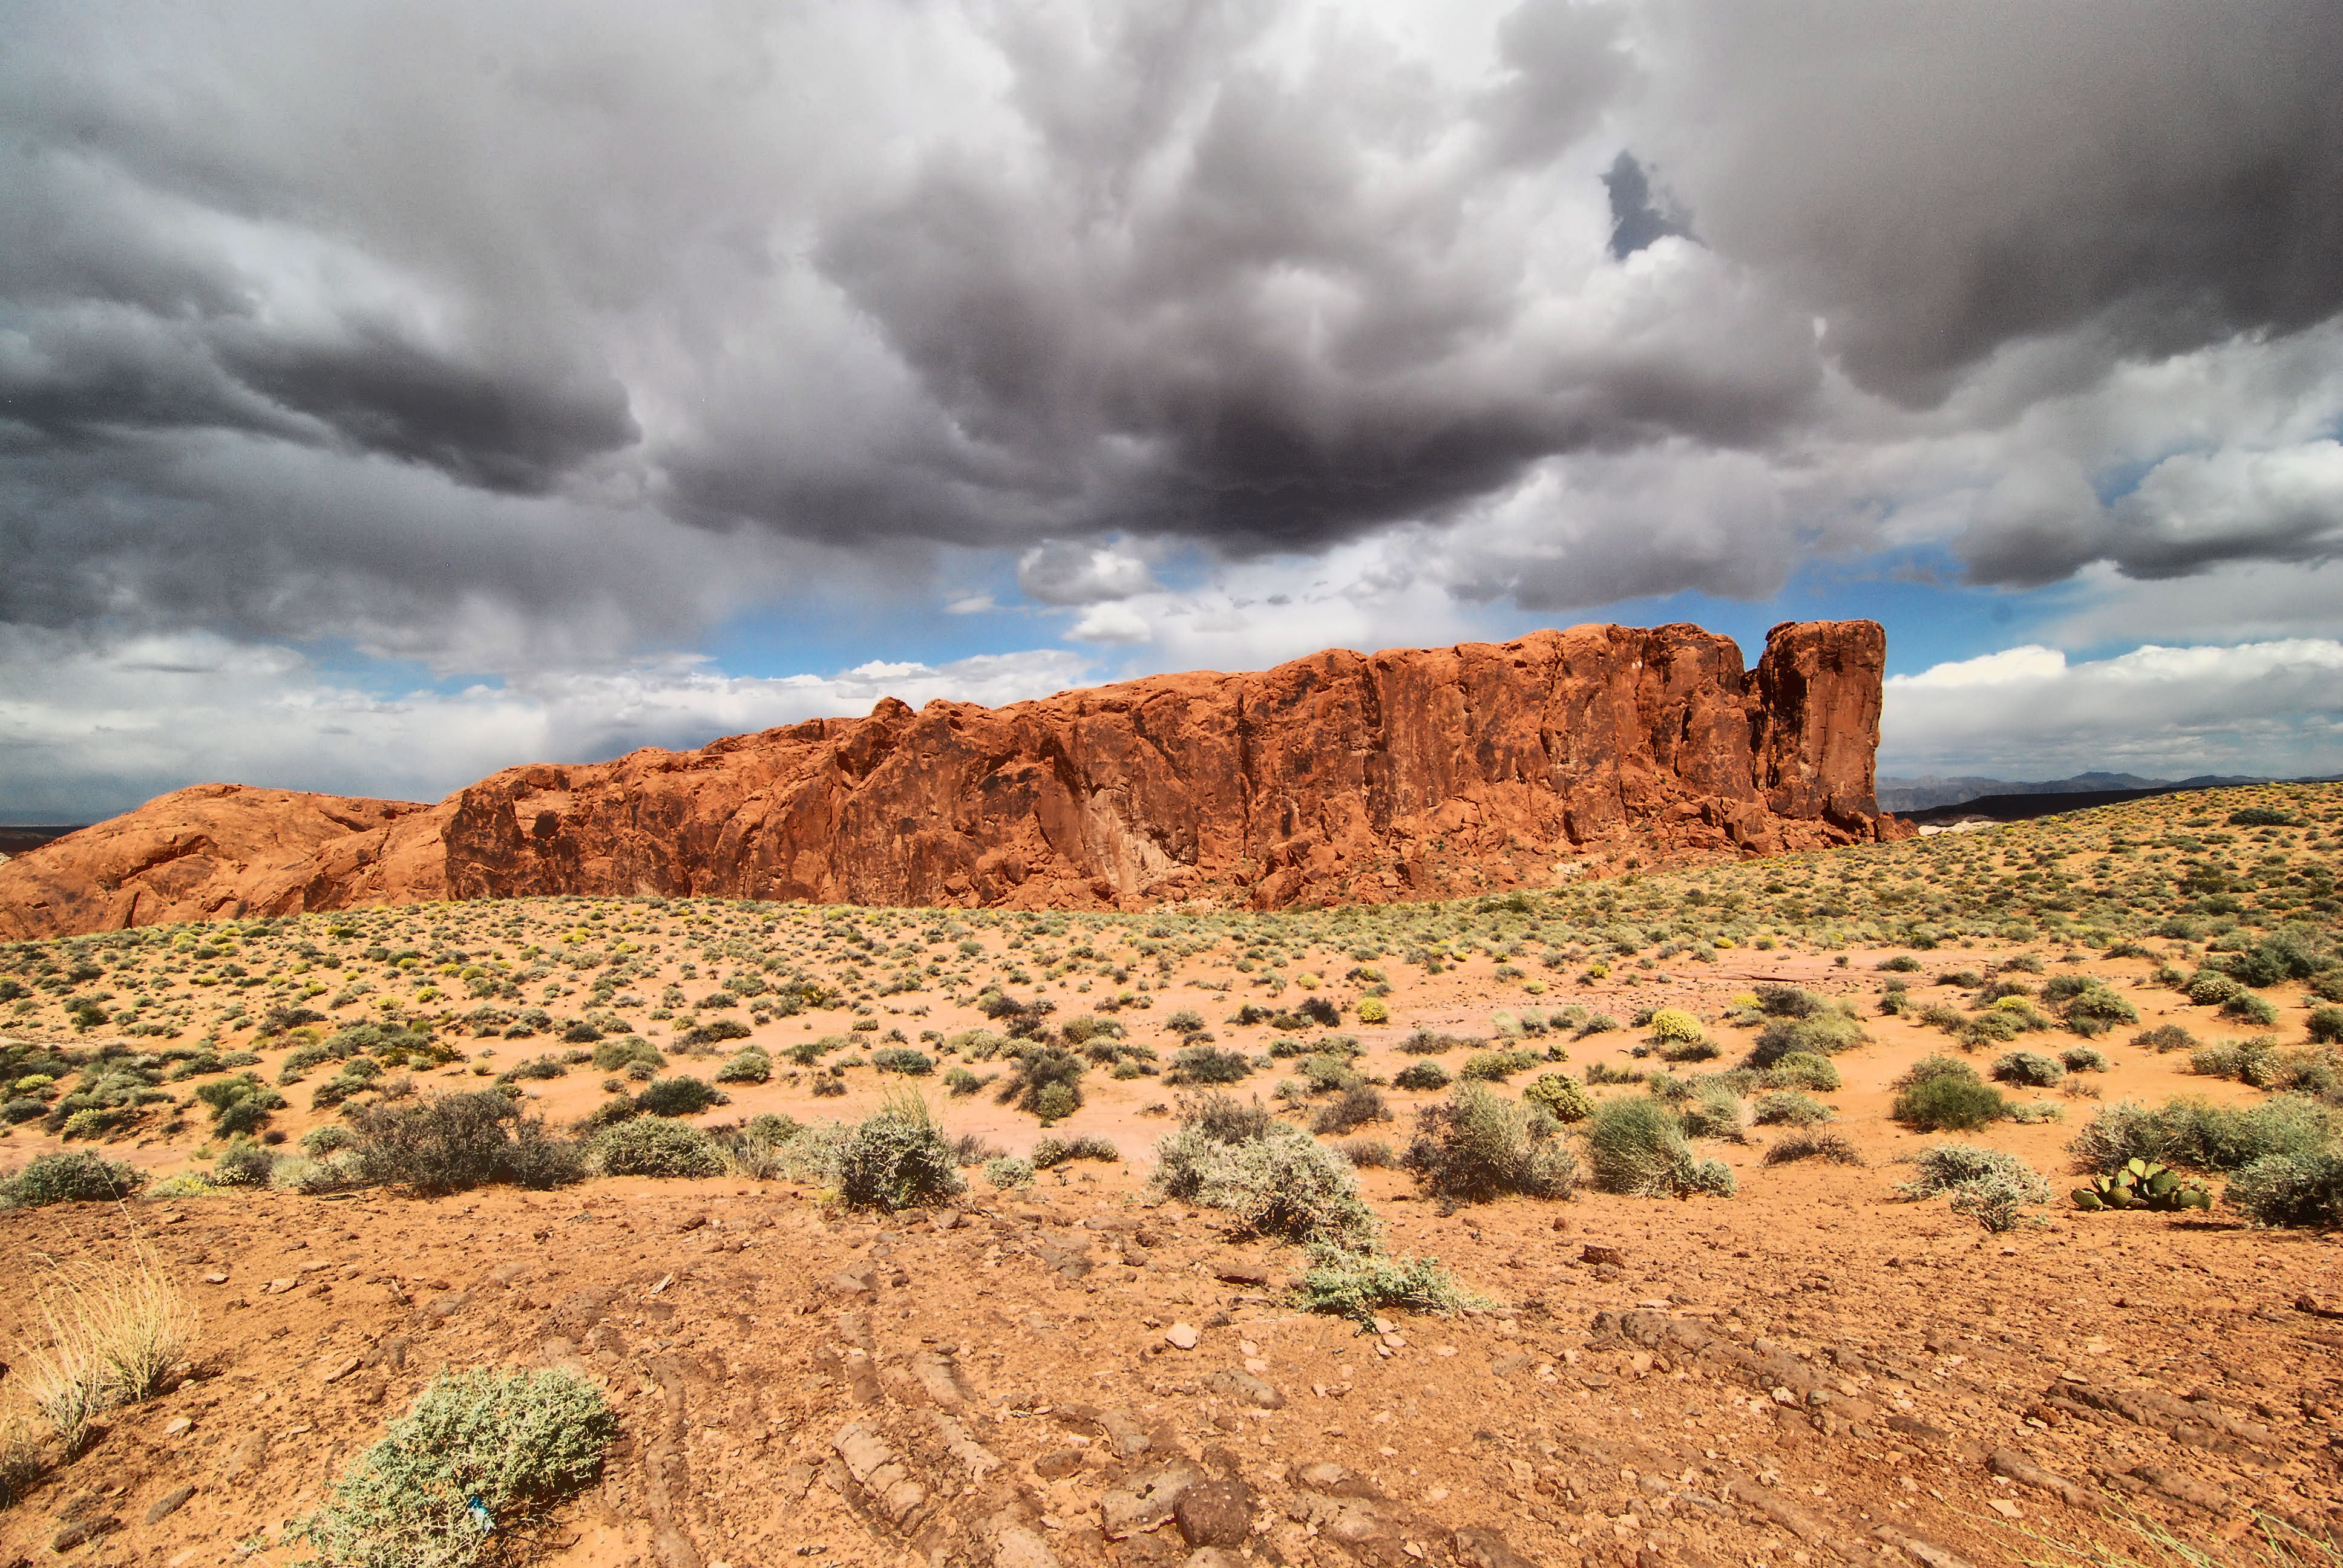 Fire on the Mountain, Clouds, Desert, Landscape, Mountain, HQ Photo